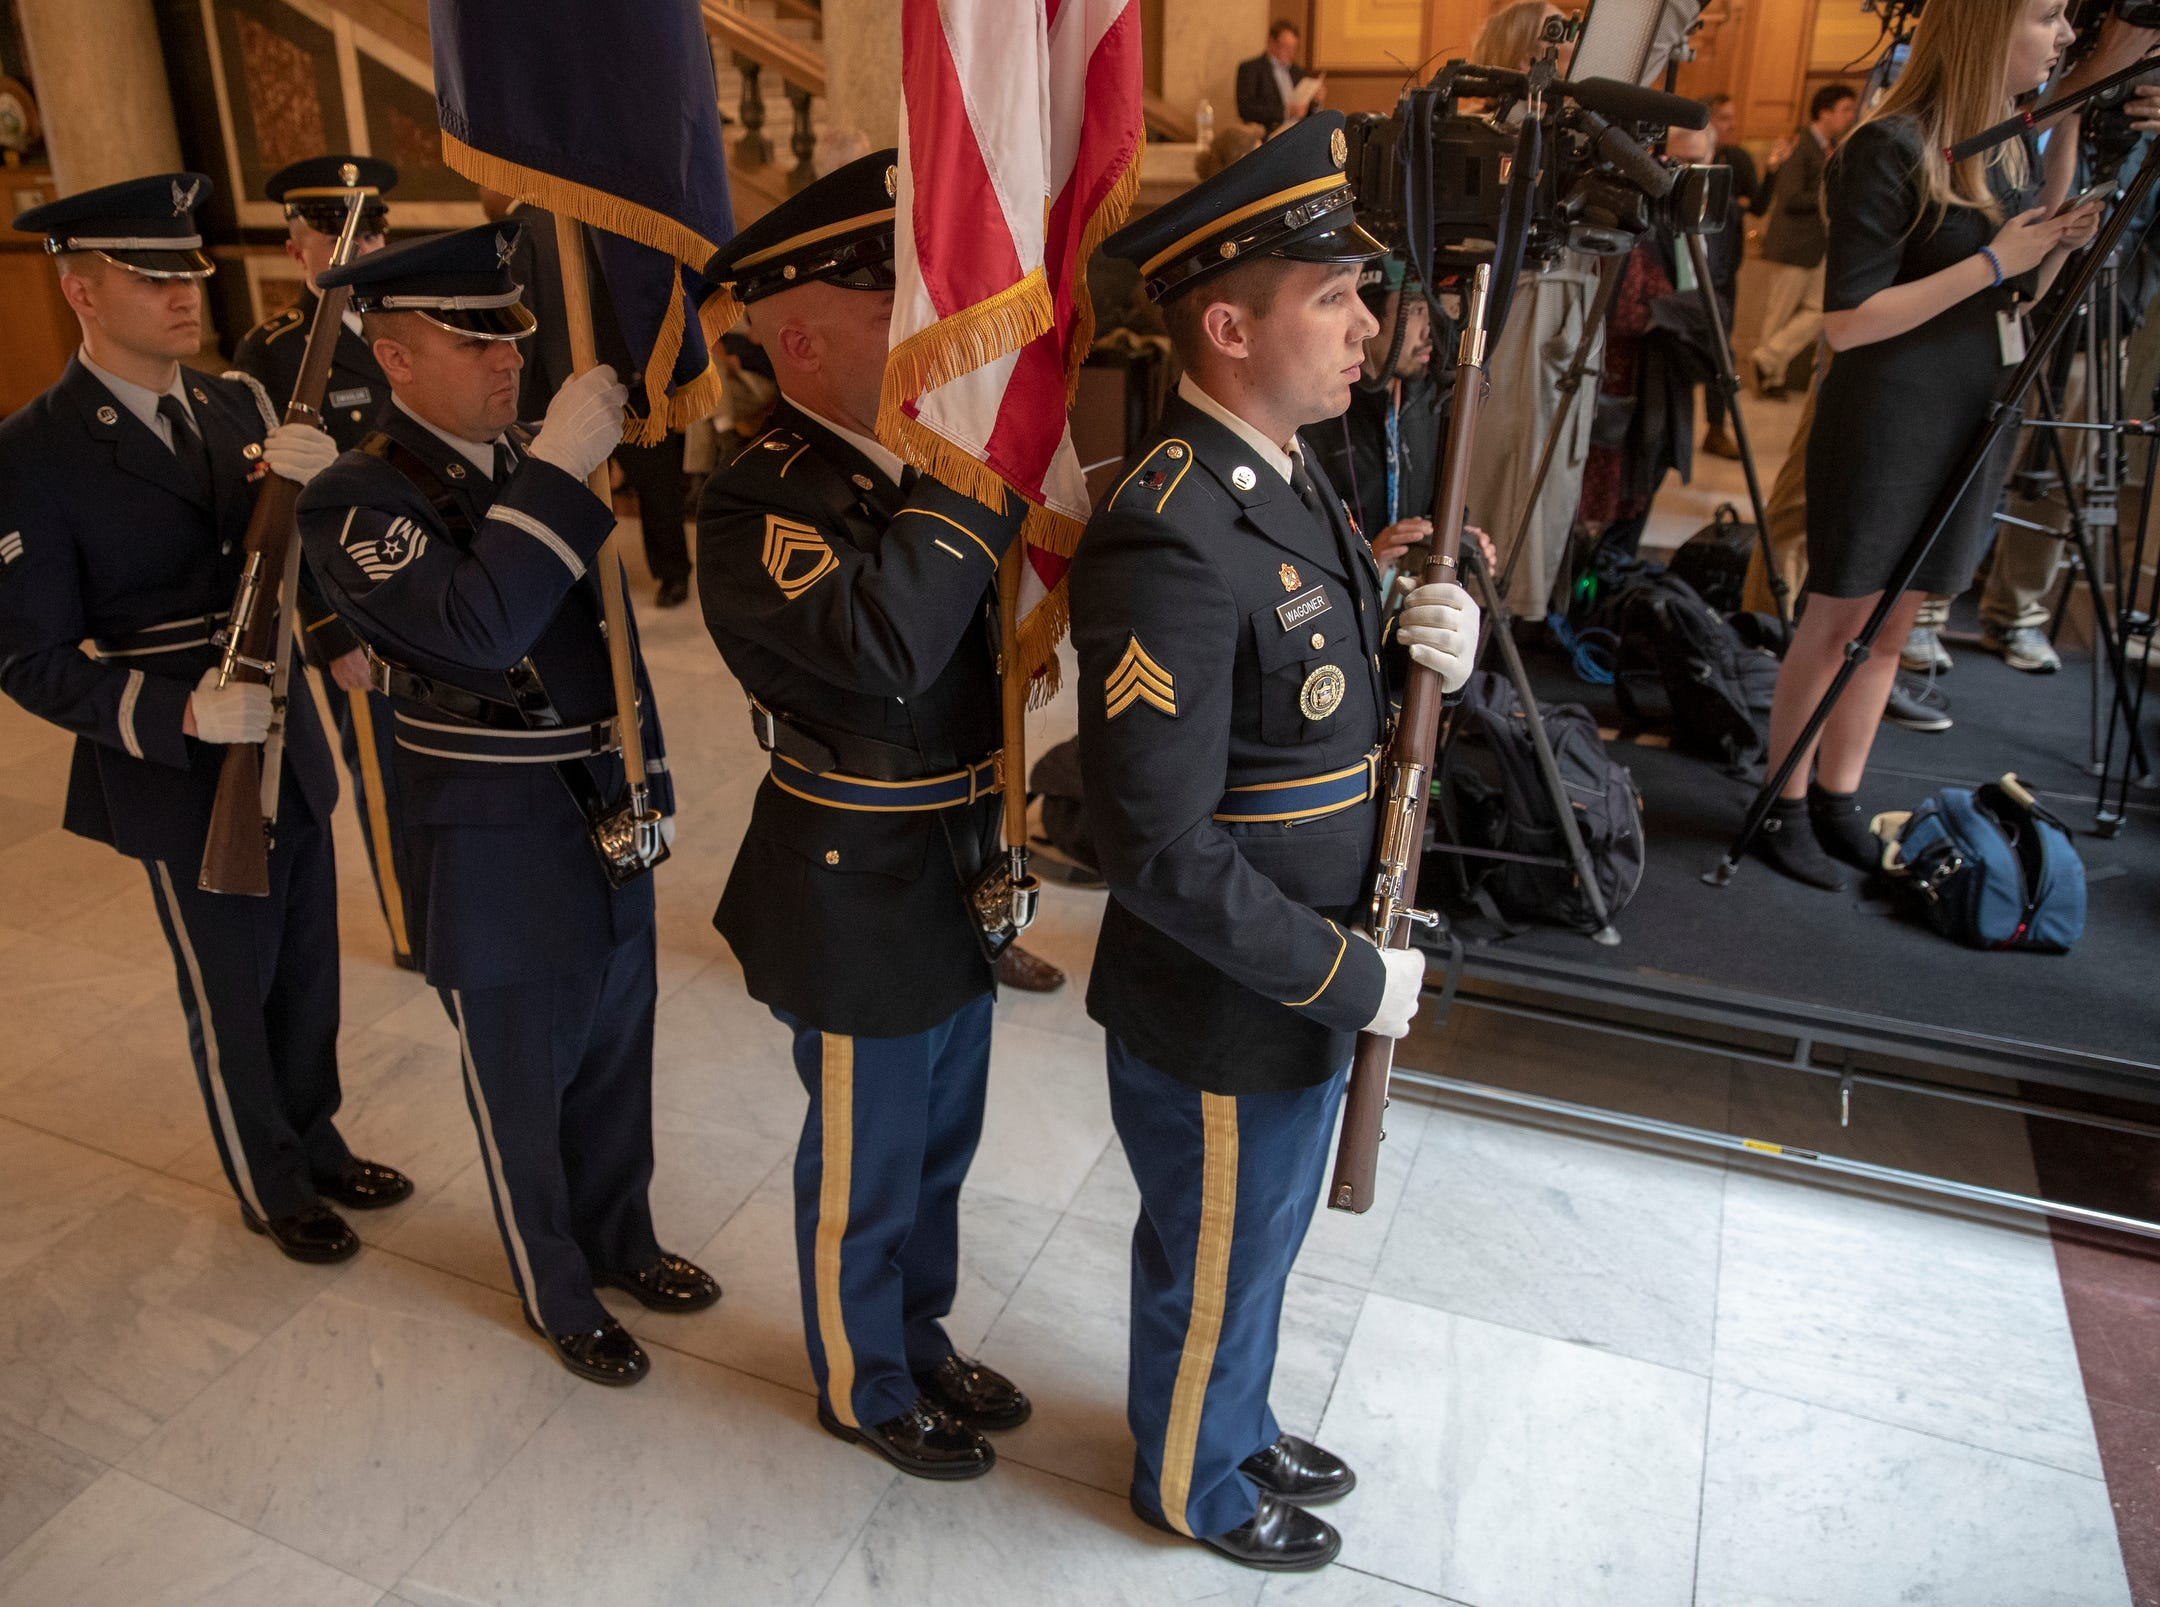 A color guard before a service for Indiana's Birch Bayh, who died on March 14, and was a three-term U.S. Senator, Indiana Statehouse, Indianapolis, Wednesday, May 1, 2019.